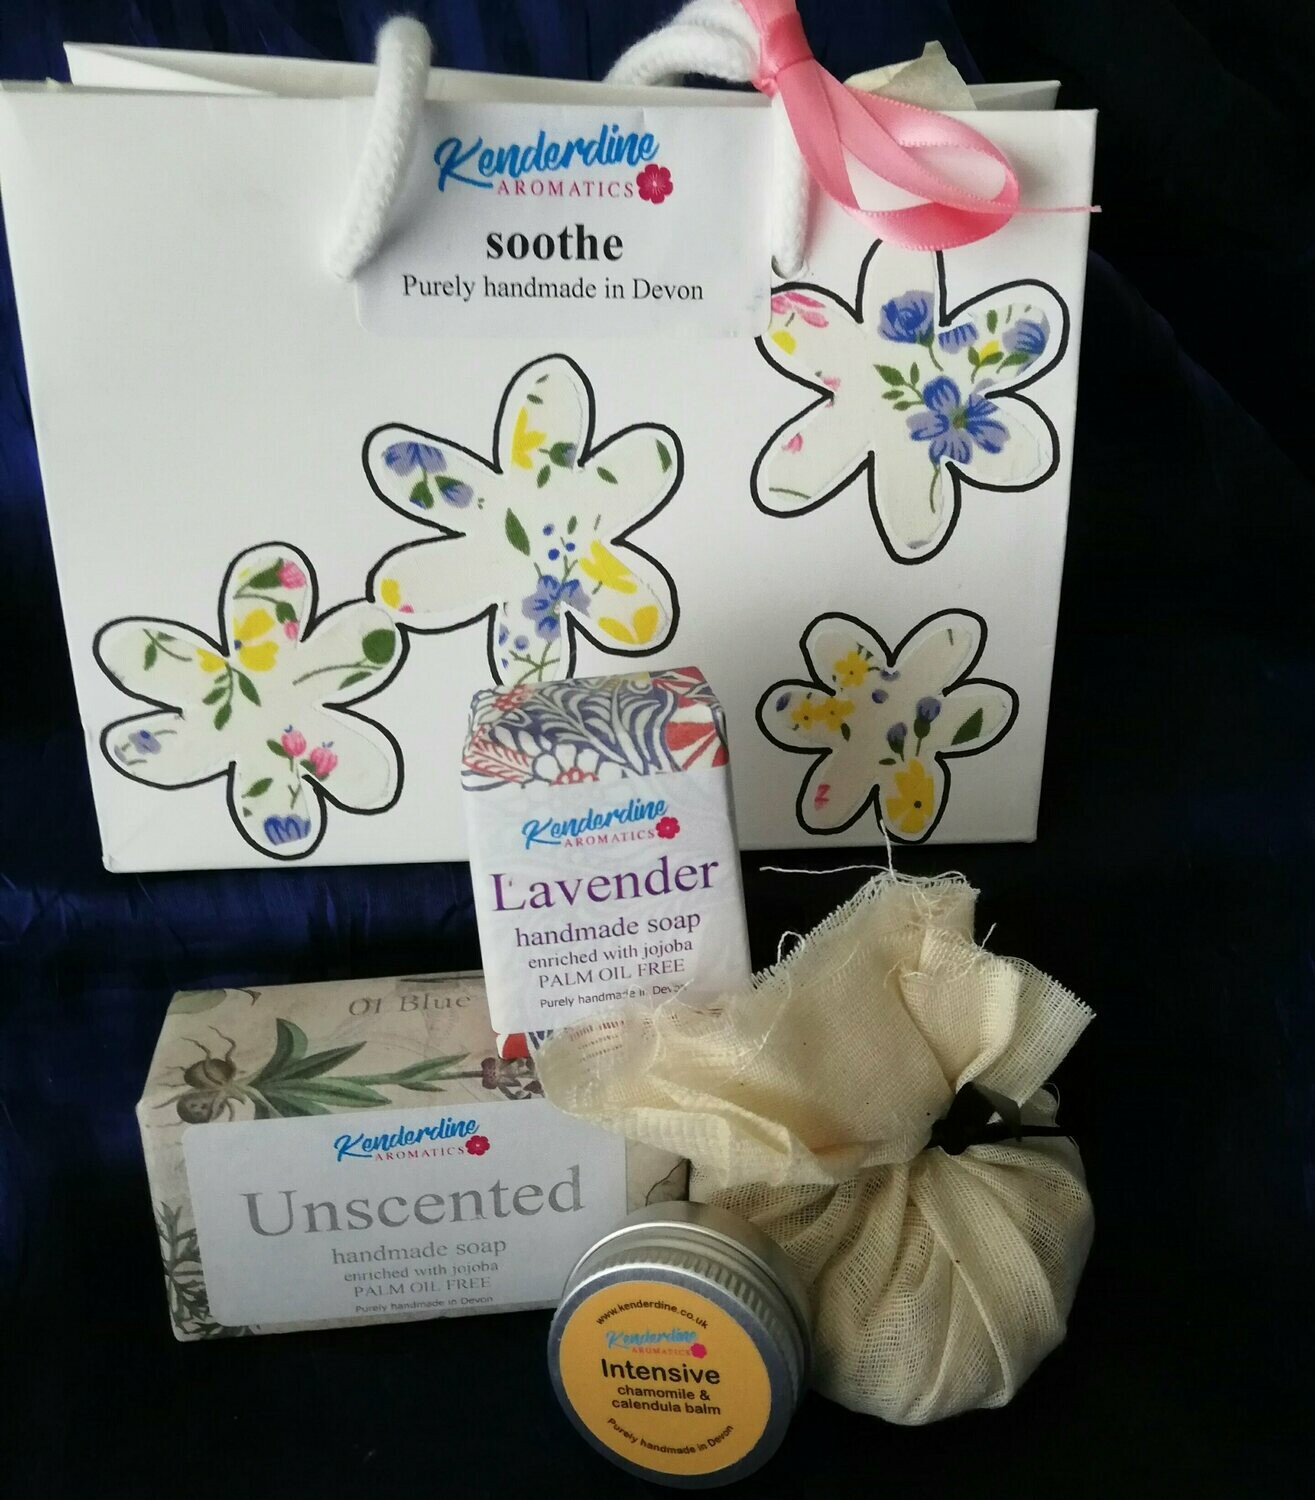 Soothe gift selection